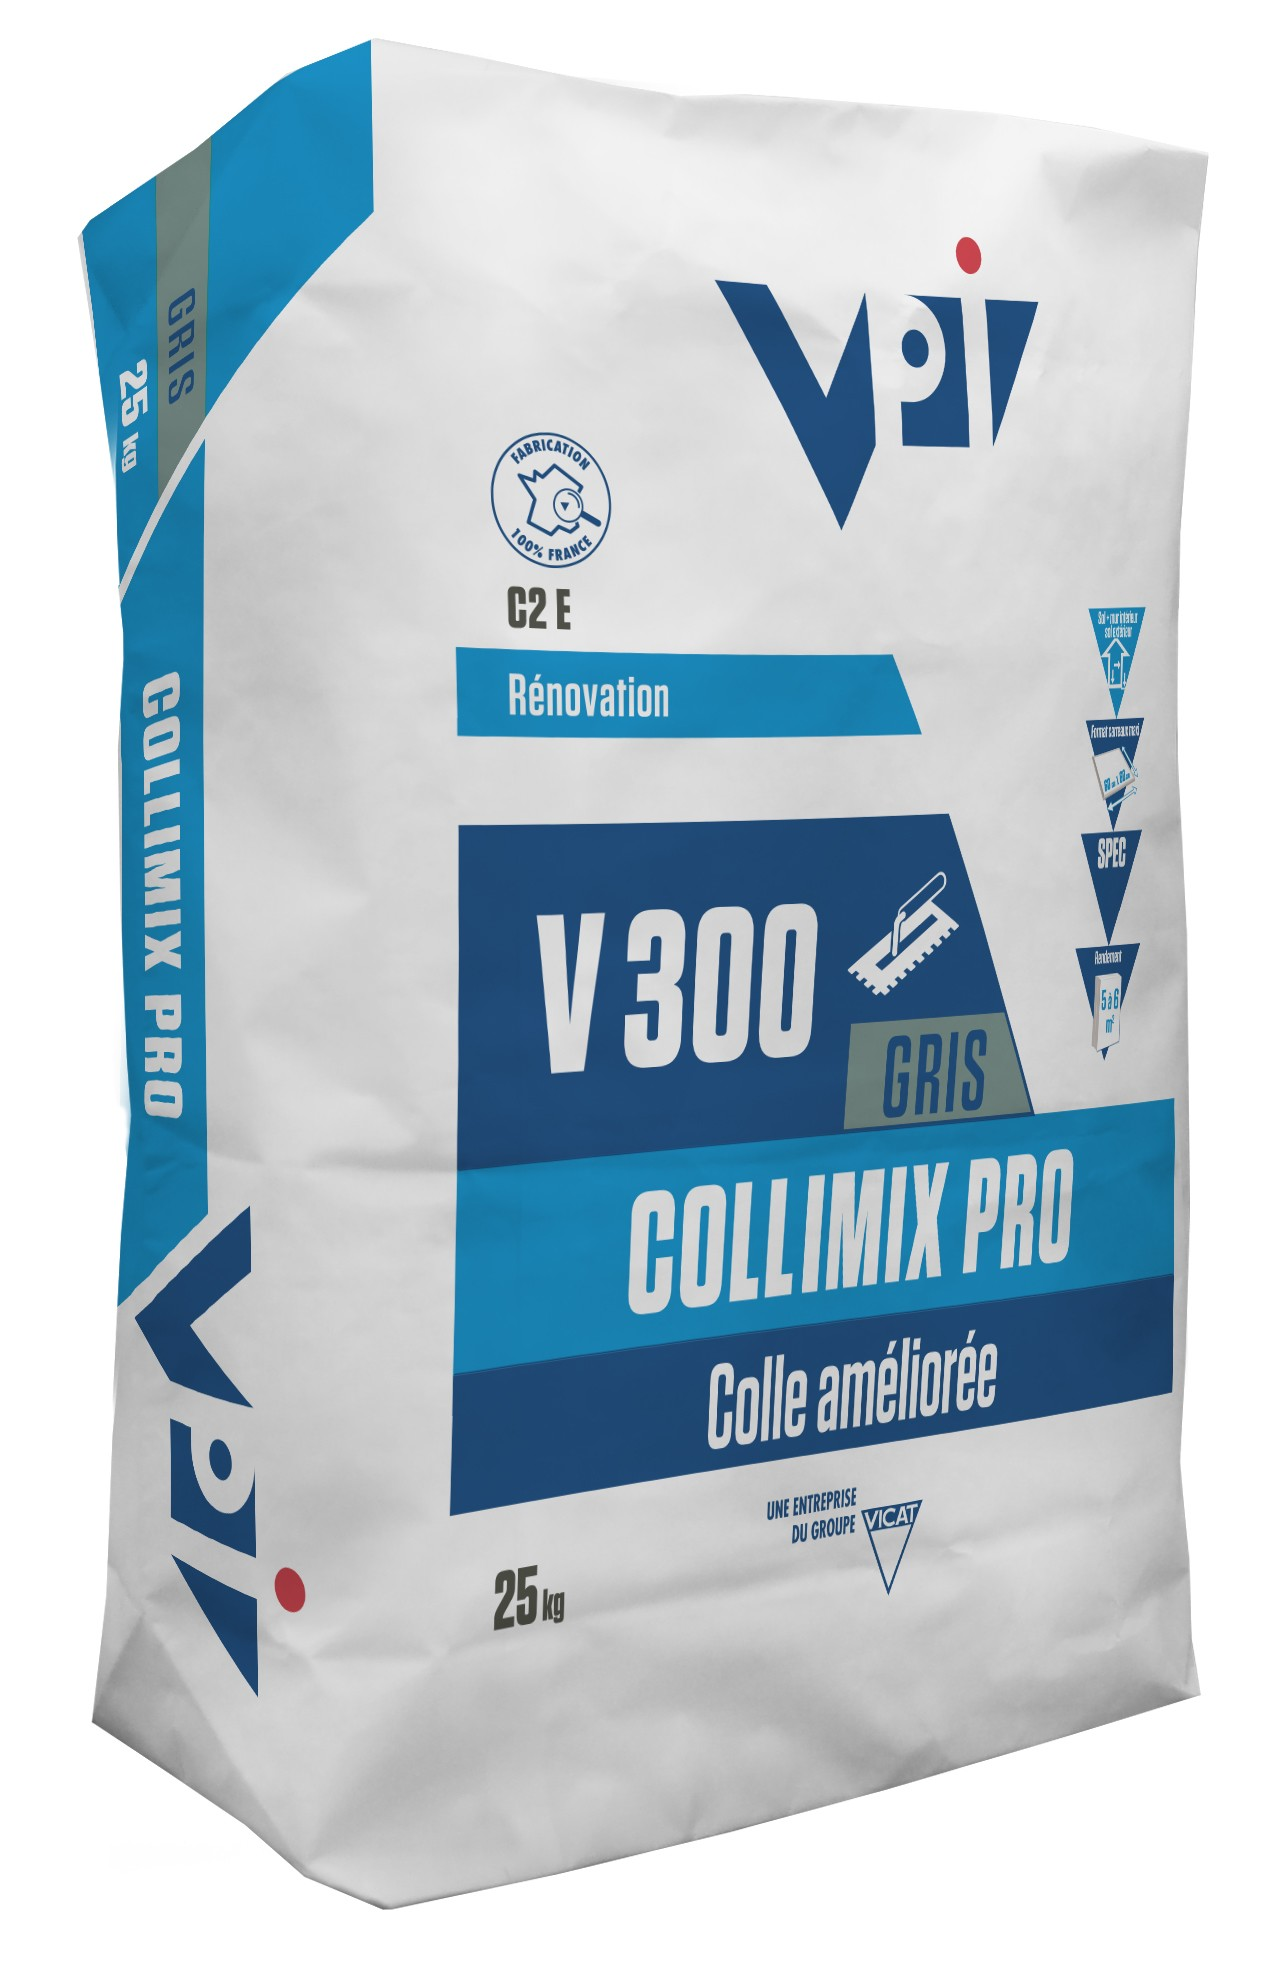 Colle Carrelage Collimix Eco 25 Kg Carrelage Colle Carrelage Vpi Colles Et Fournitures Colle Carrelage